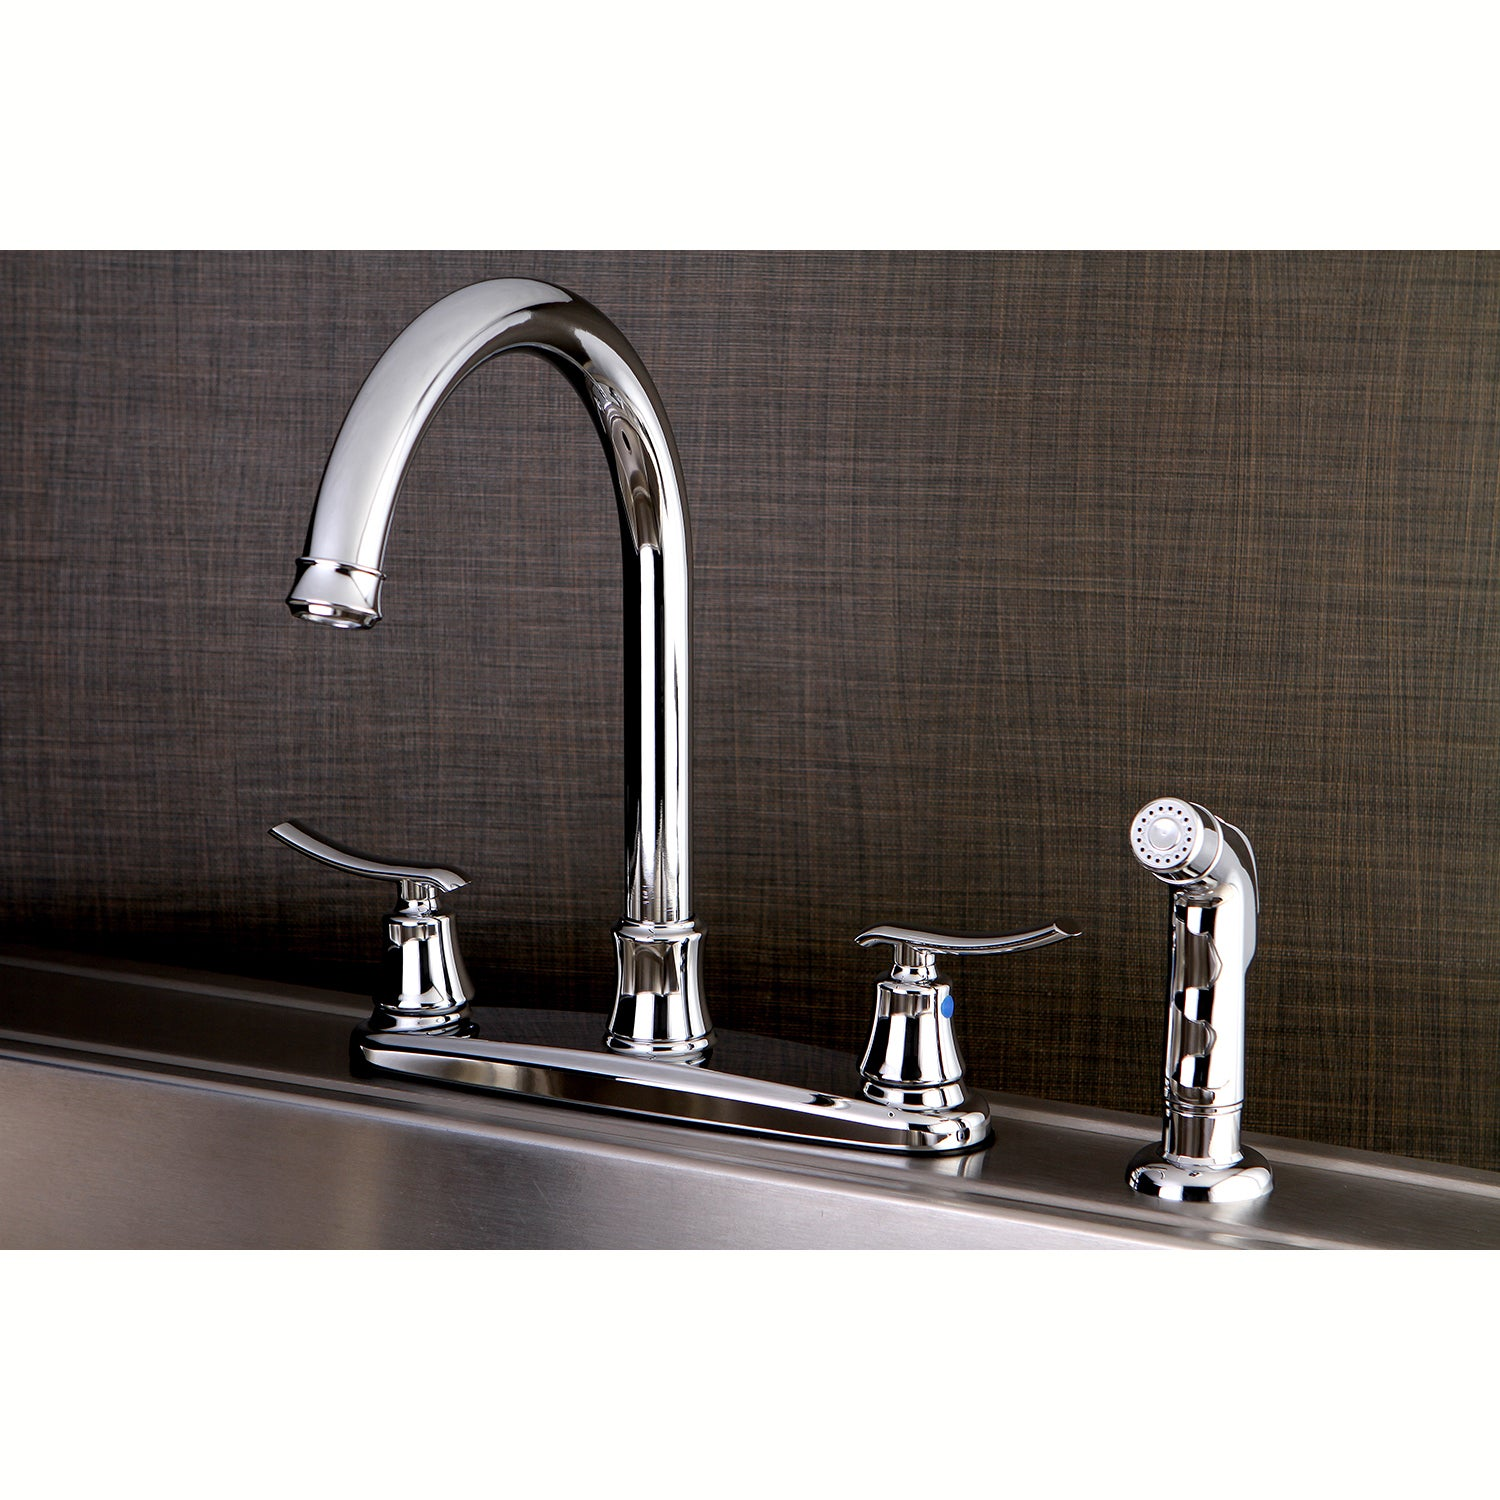 Shop Euro Chrome Kitchen Faucet with Side Sprayer - Free Shipping ...